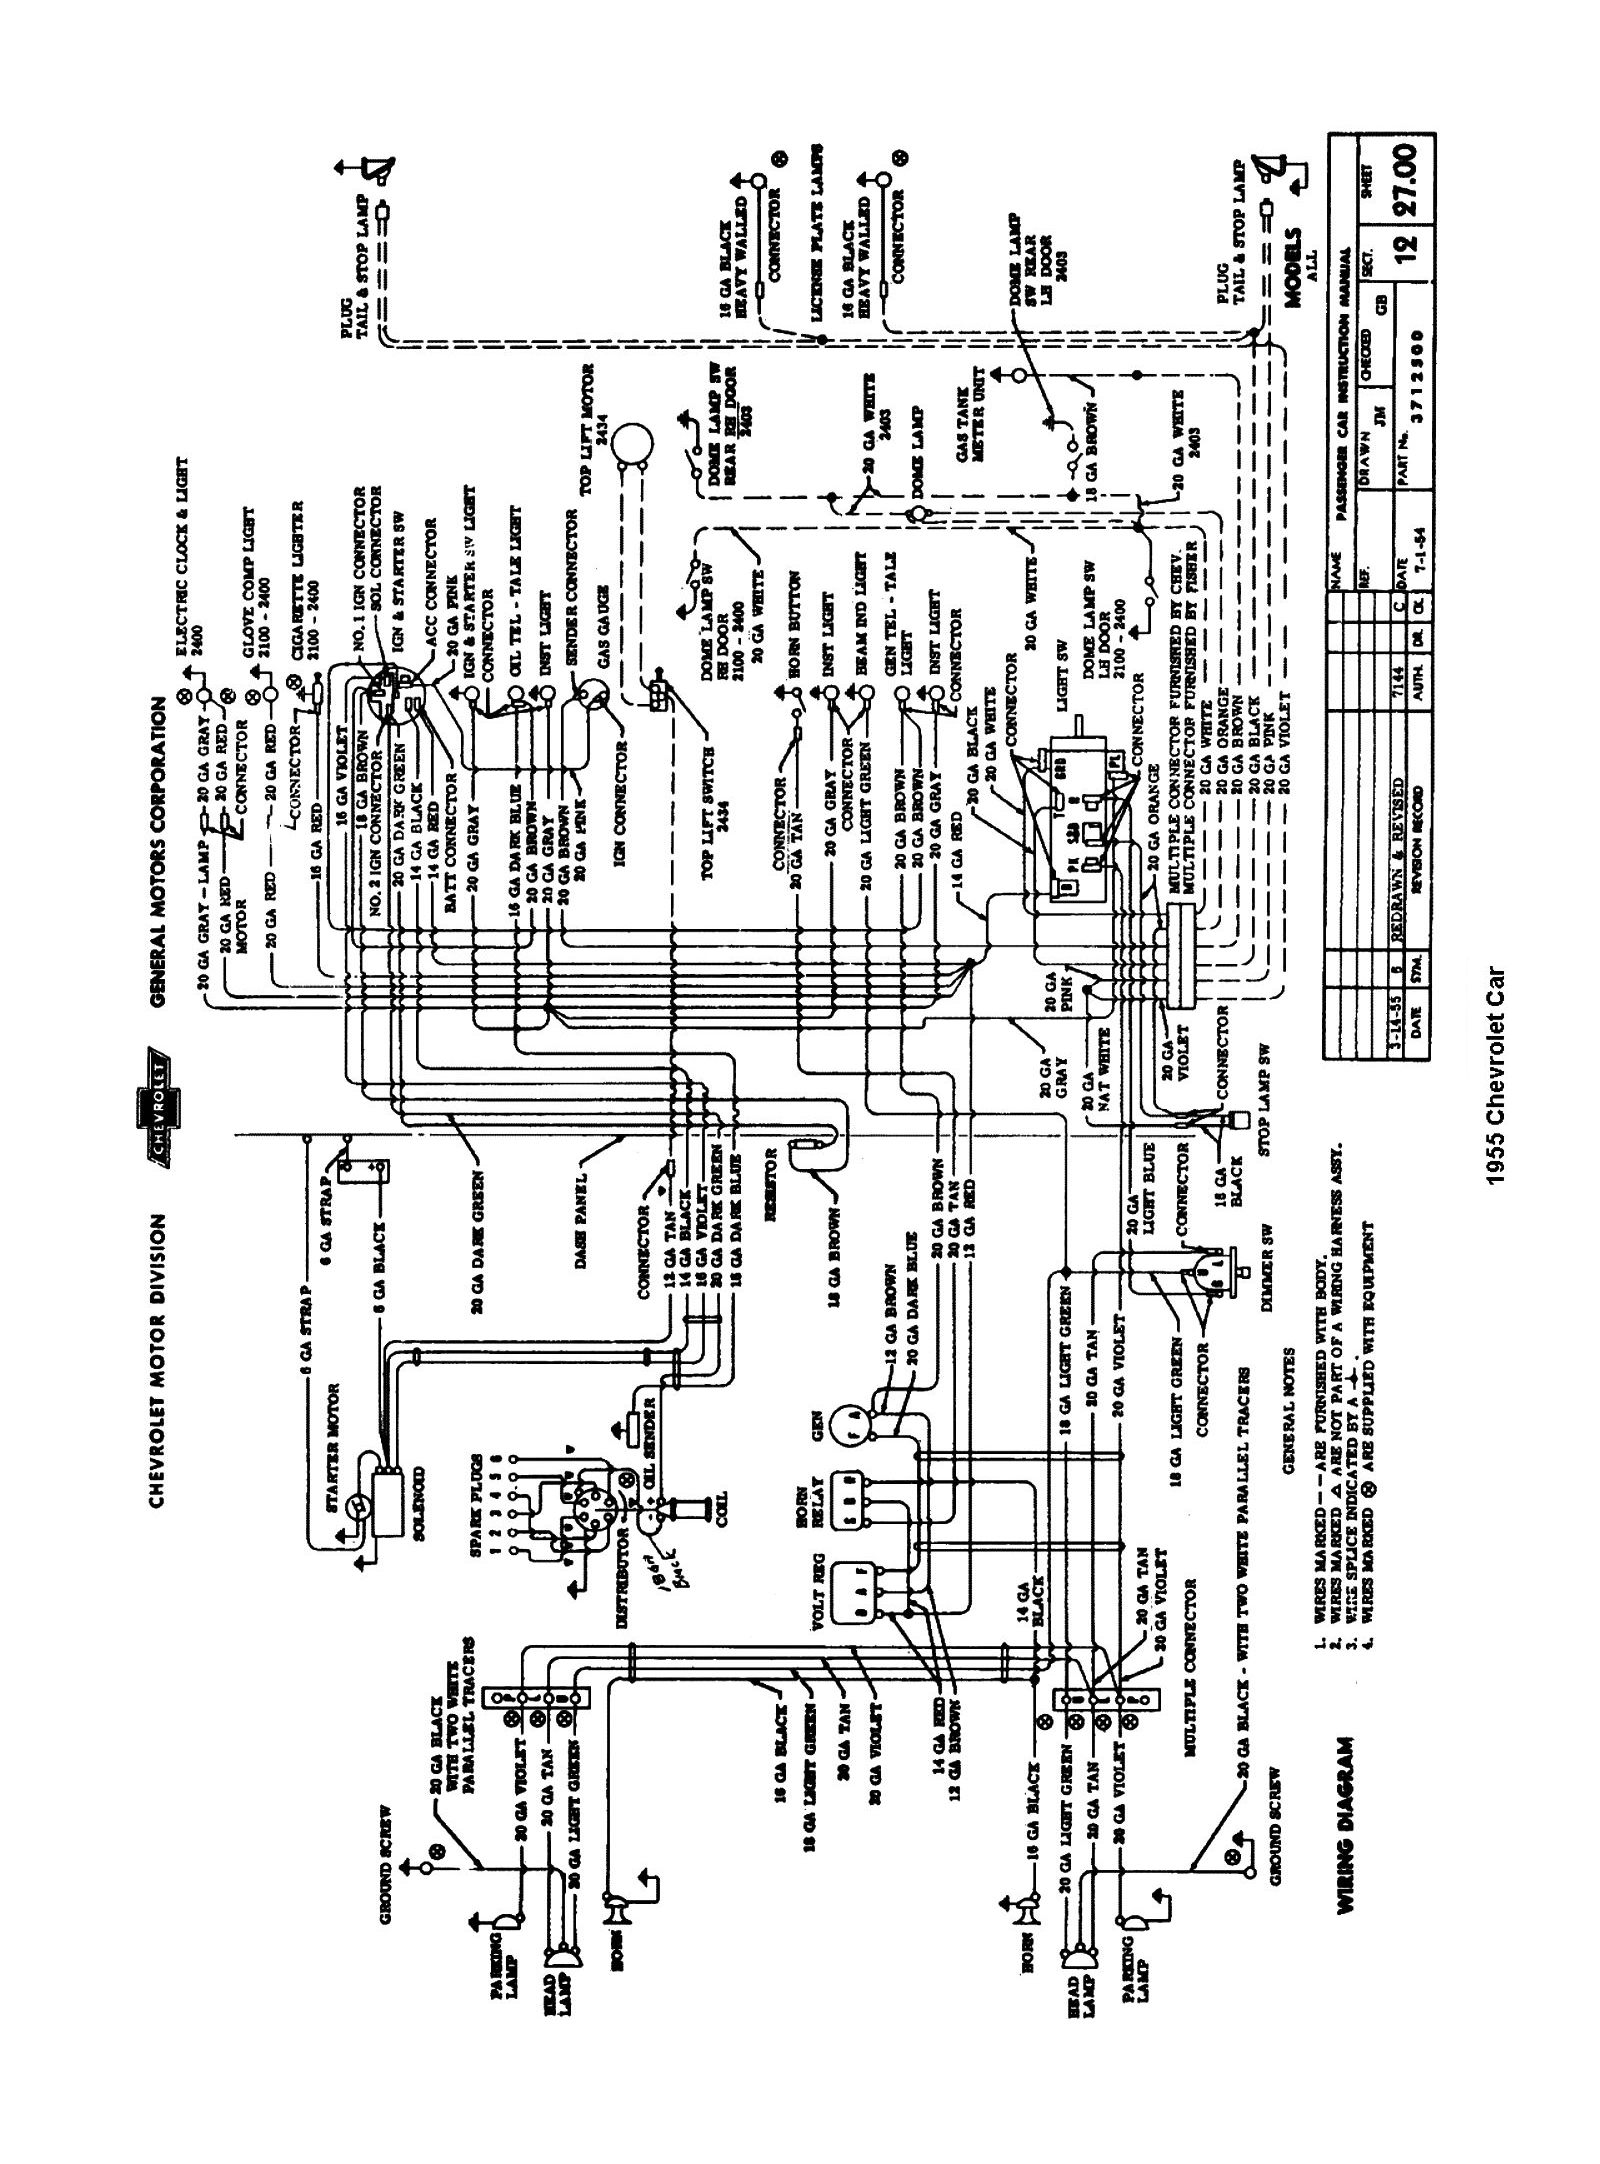 55car1 shop wiring diagram cart wiring diagram \u2022 wiring diagrams j 4900 International Truck Wiring Diagram for Wipers at edmiracle.co